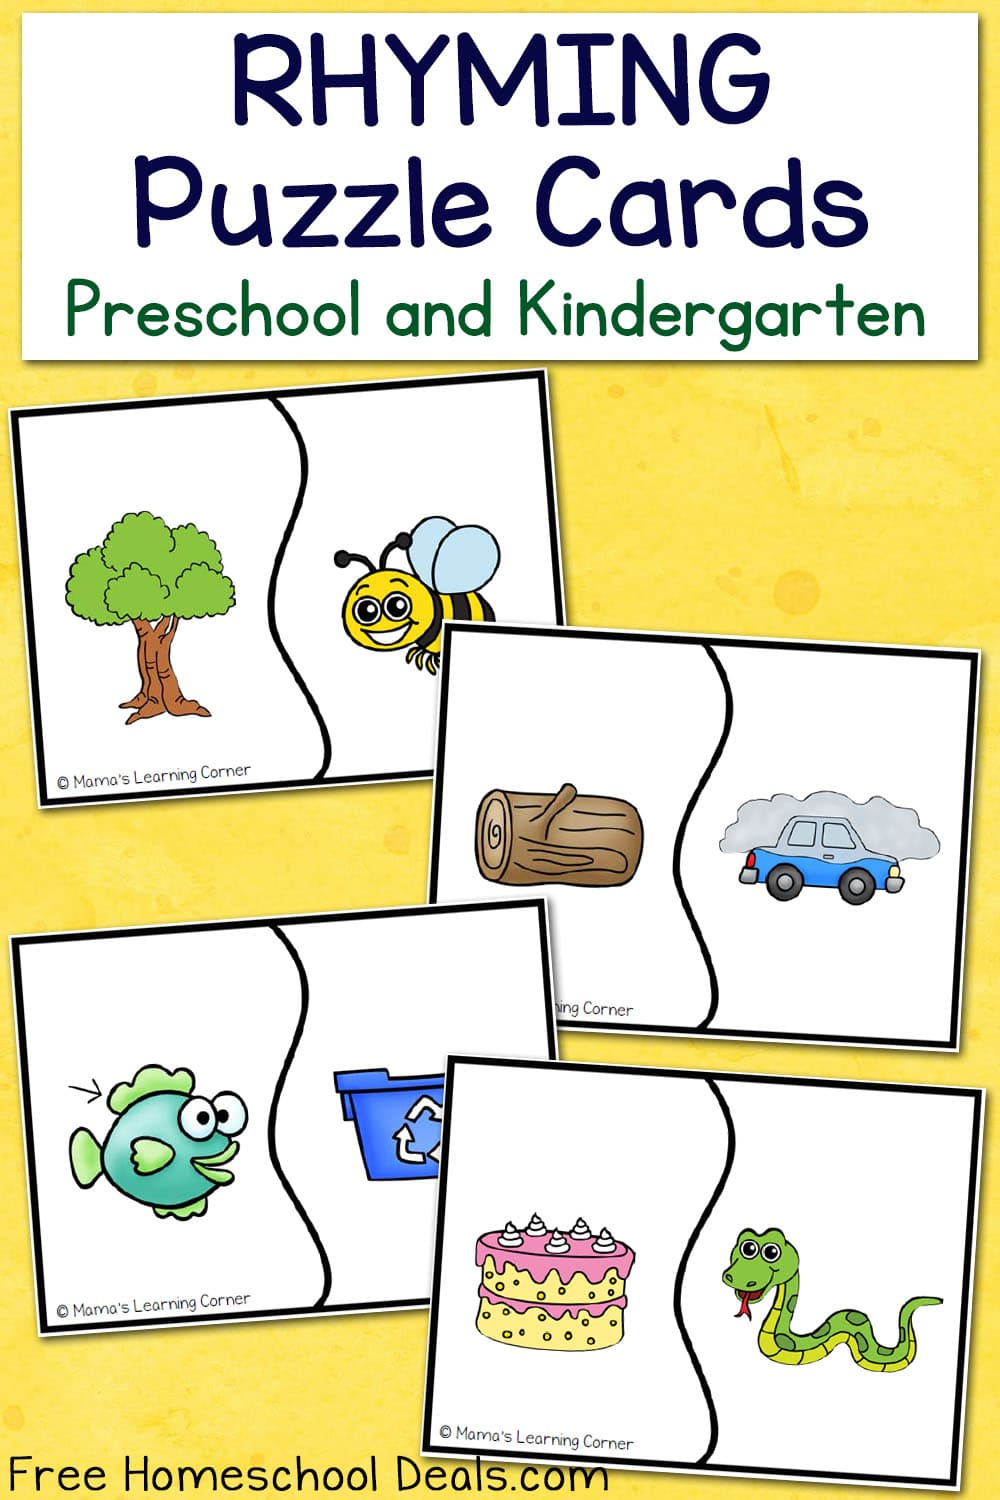 FREE RHYMING PUZZLE CARDS (Instant Download)